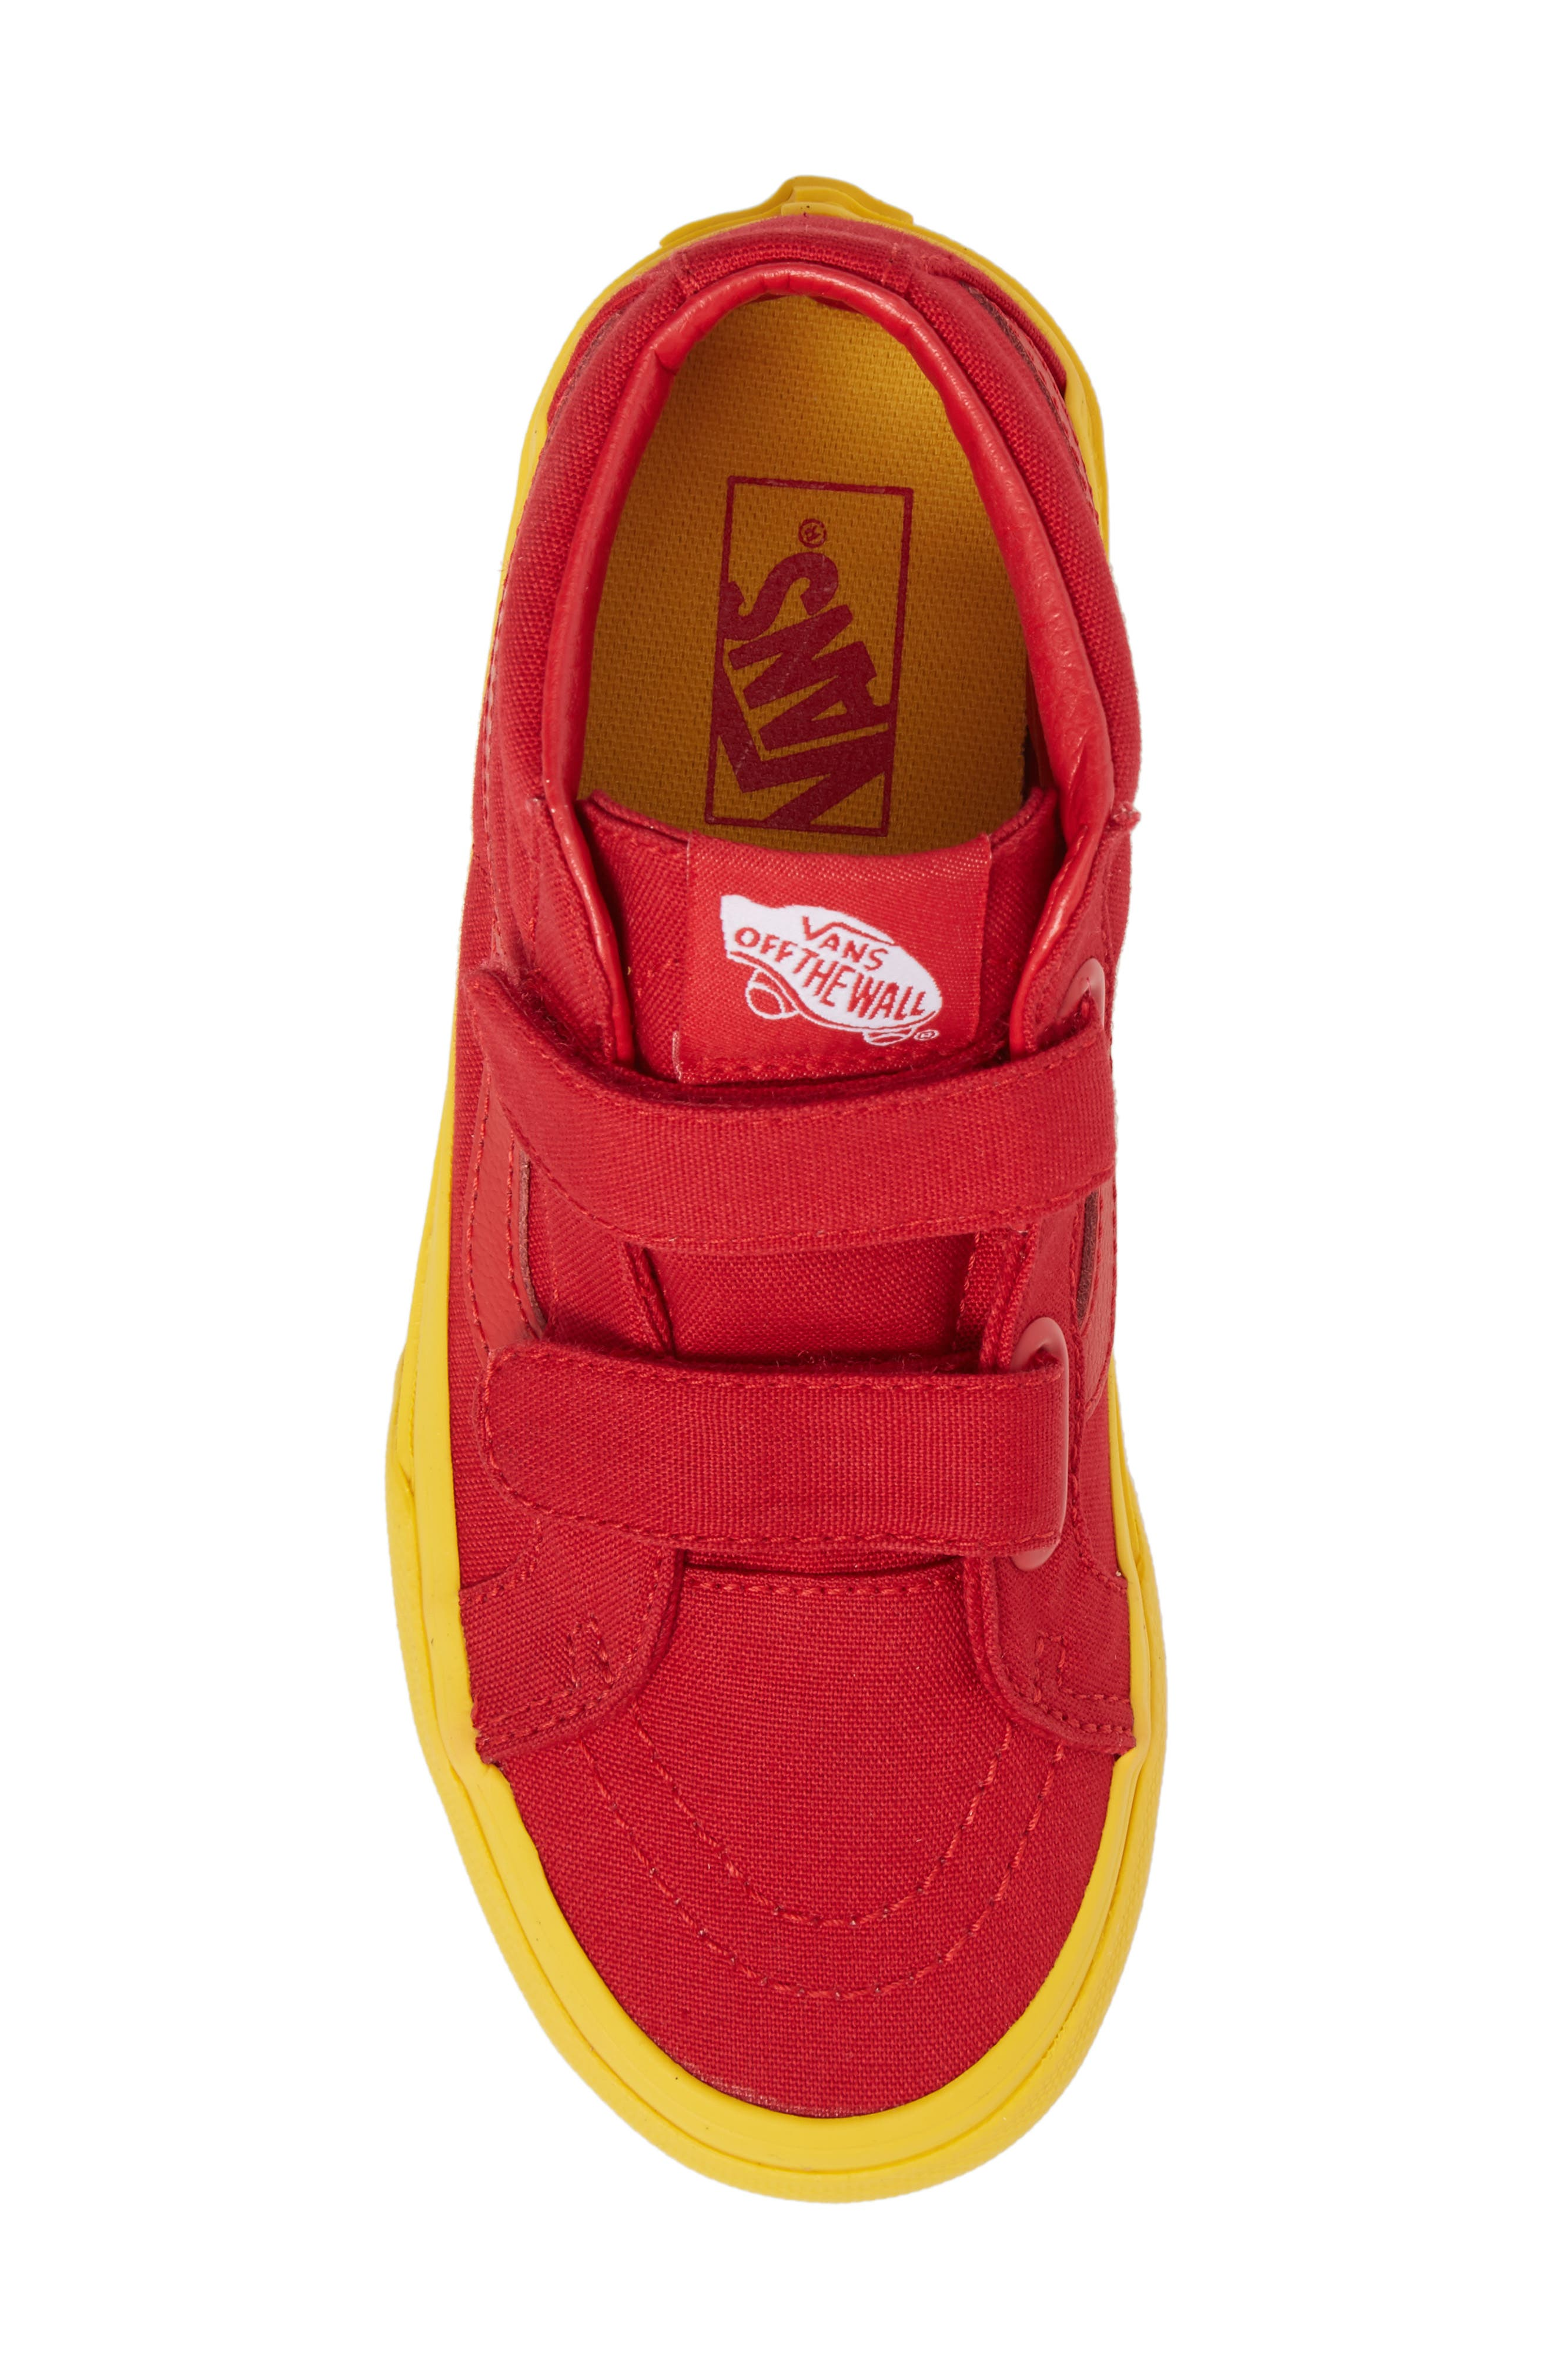 Sk8-Mid Reissue Sneaker,                             Alternate thumbnail 5, color,                             Red/ Gold Cosplay